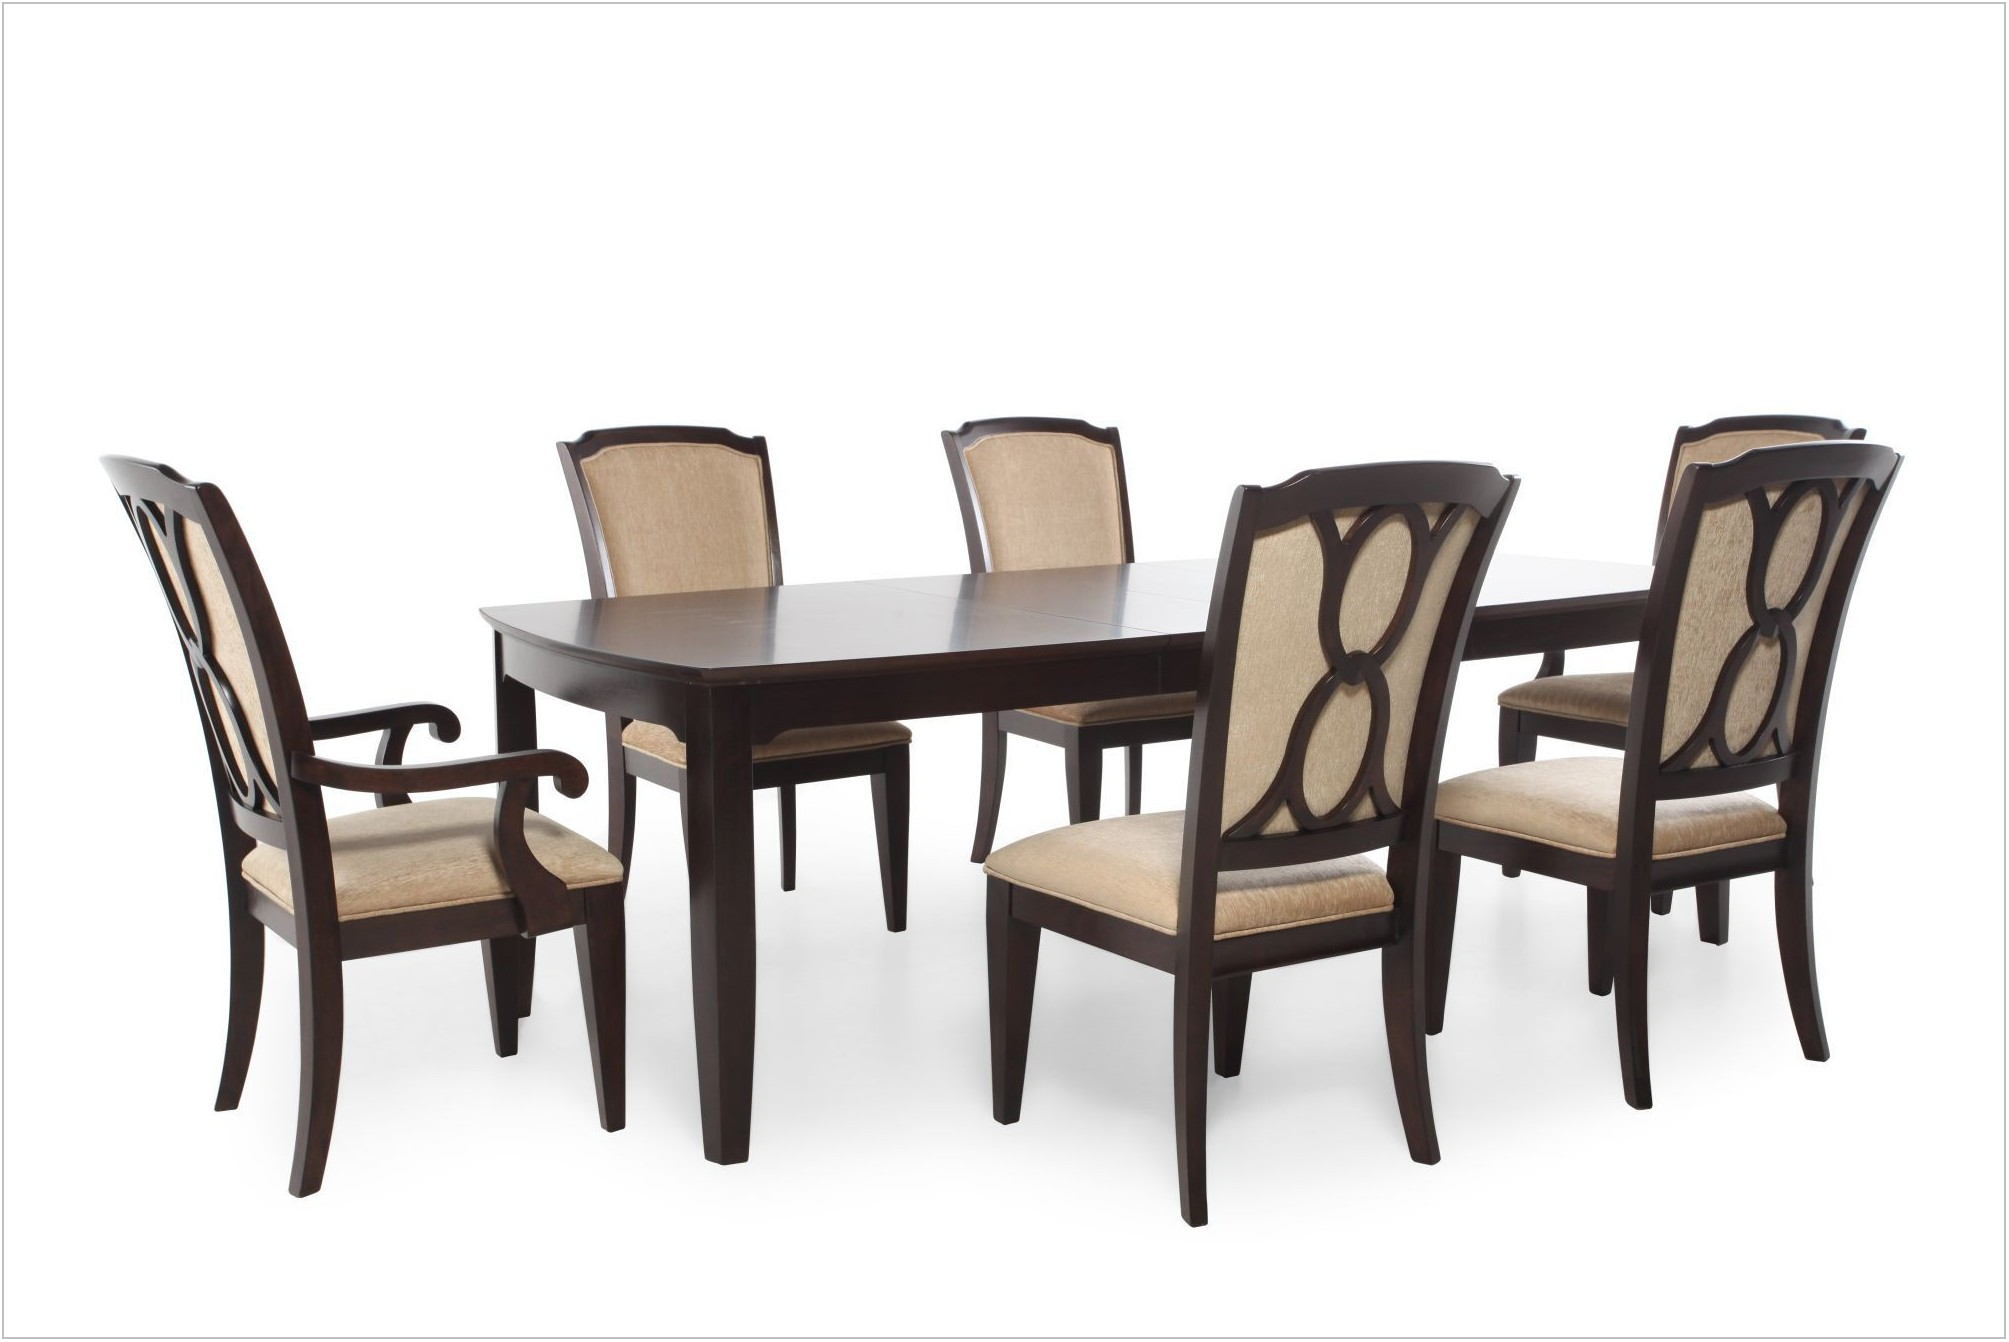 Mathis Brothers Dining Room Tables